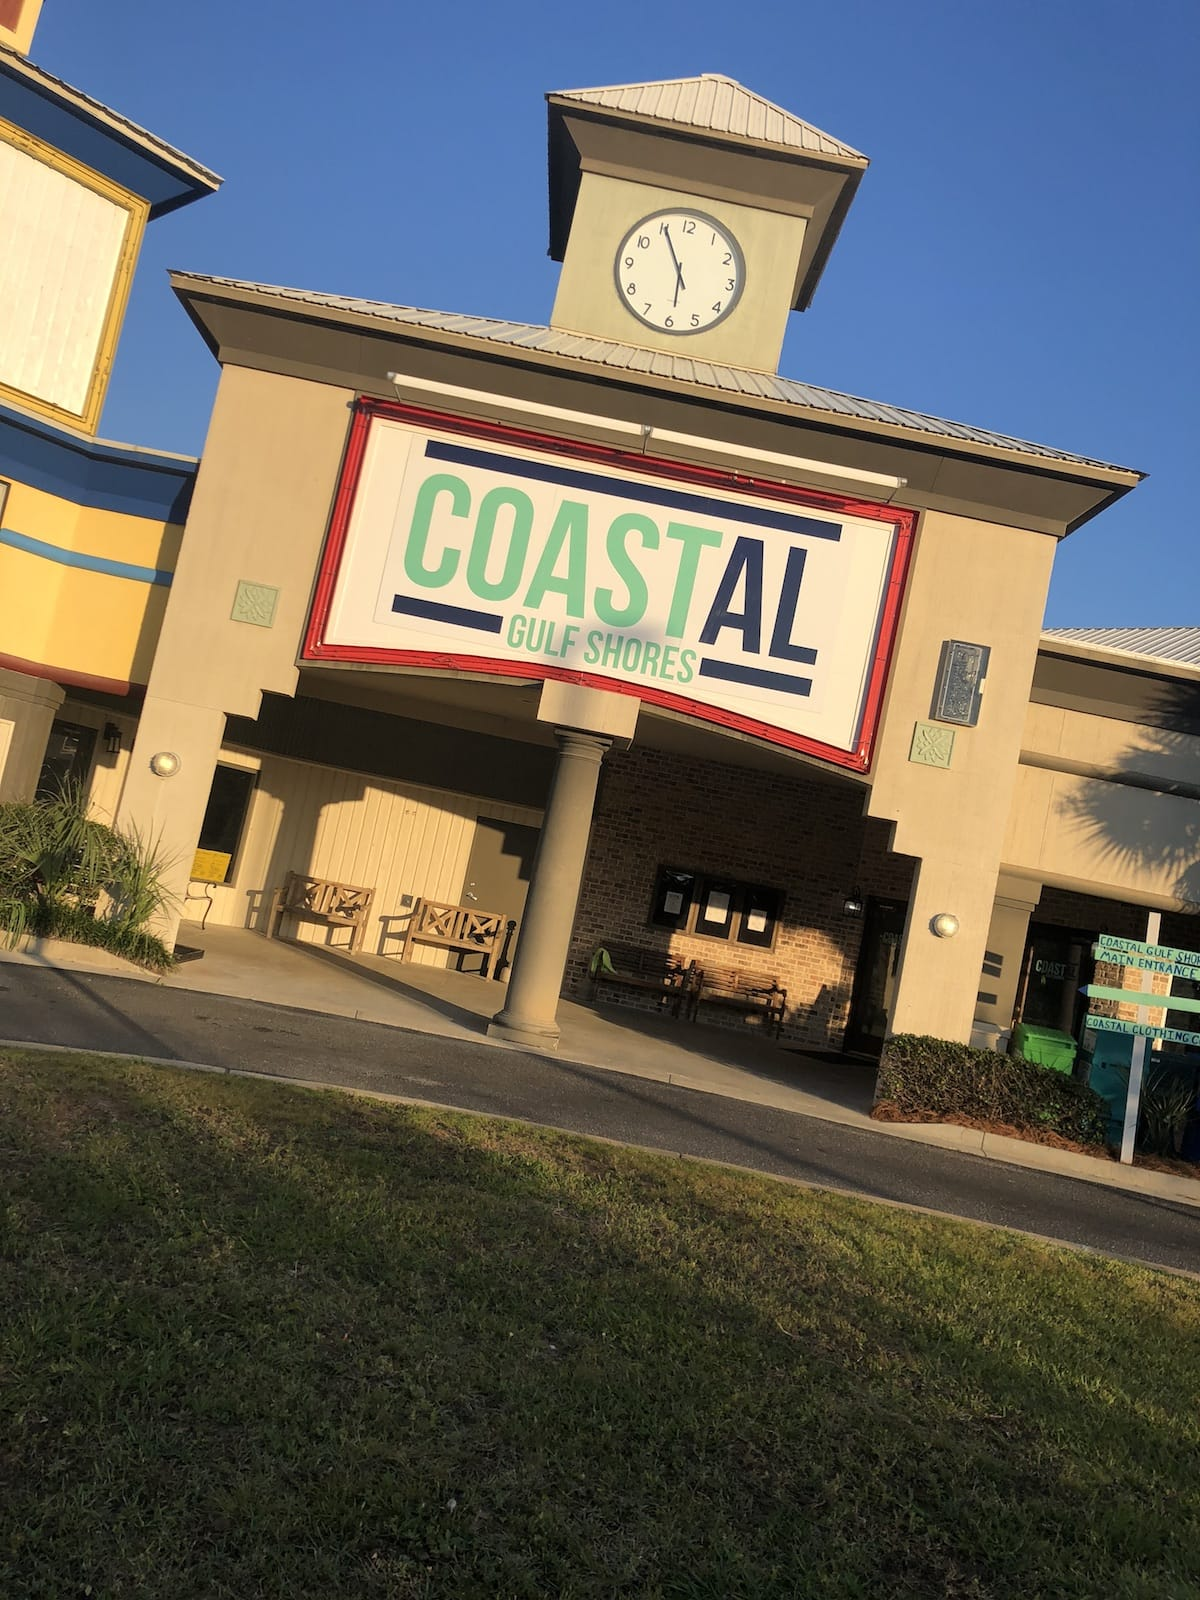 Gulf Shores, Alabama for a Girlfriend Getaway: 5 Reasons to Go - Coastal